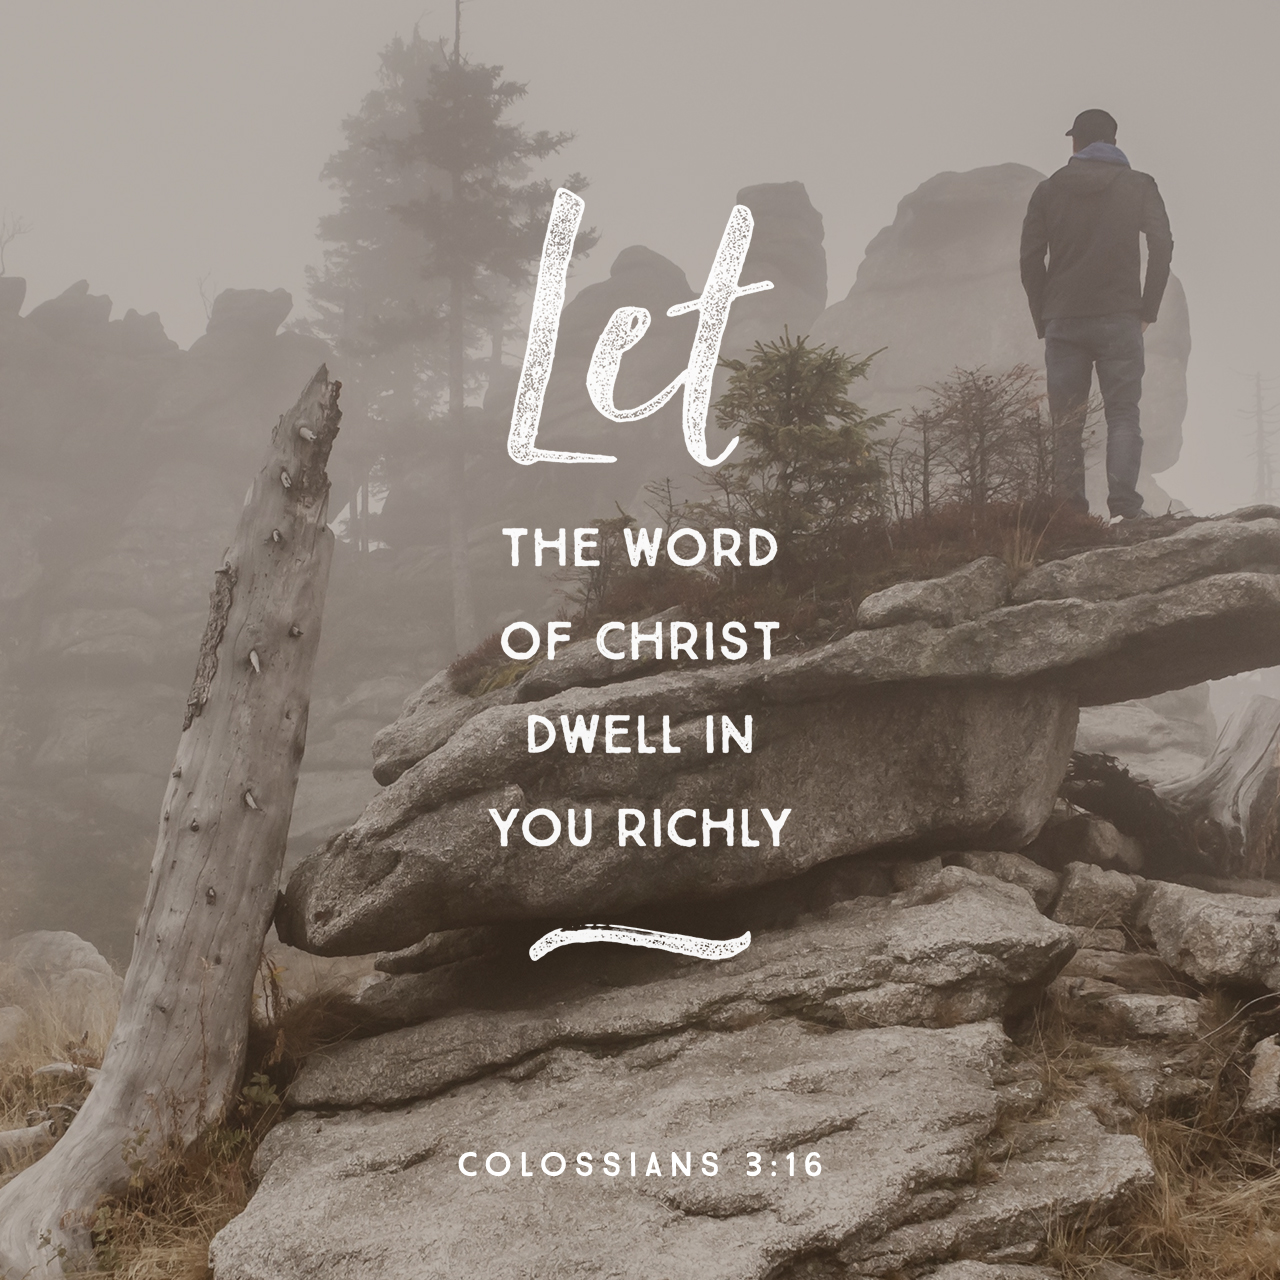 Colossians 3:16 (JPG)